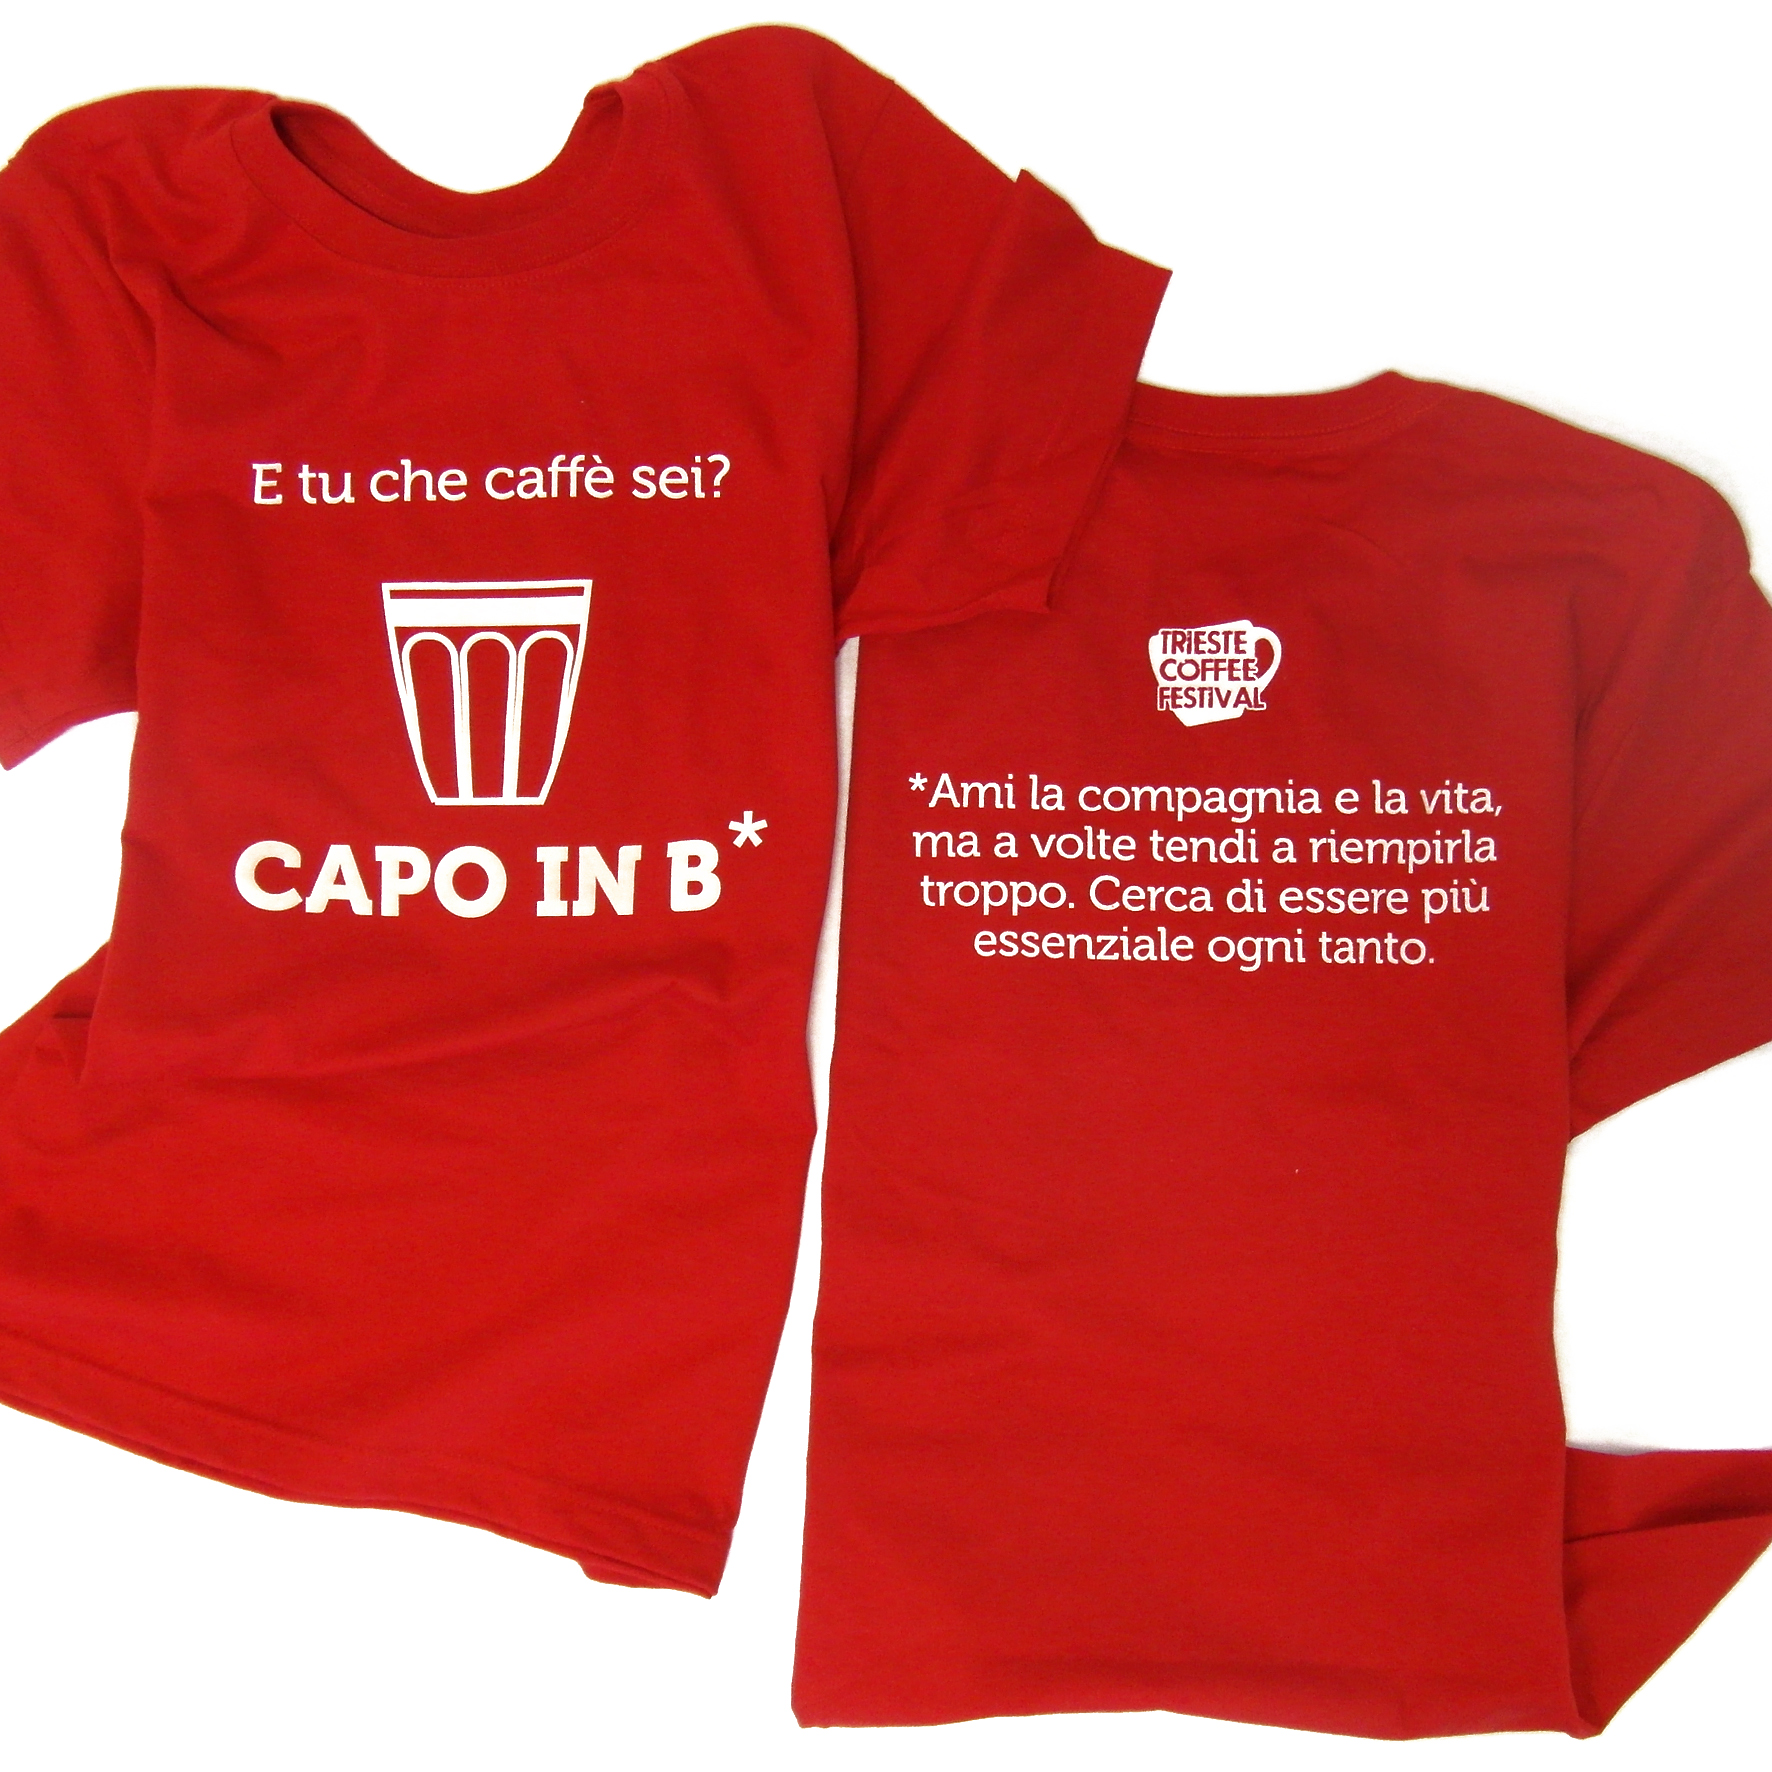 t-shirt-capoinb-trieste-coffee-festival